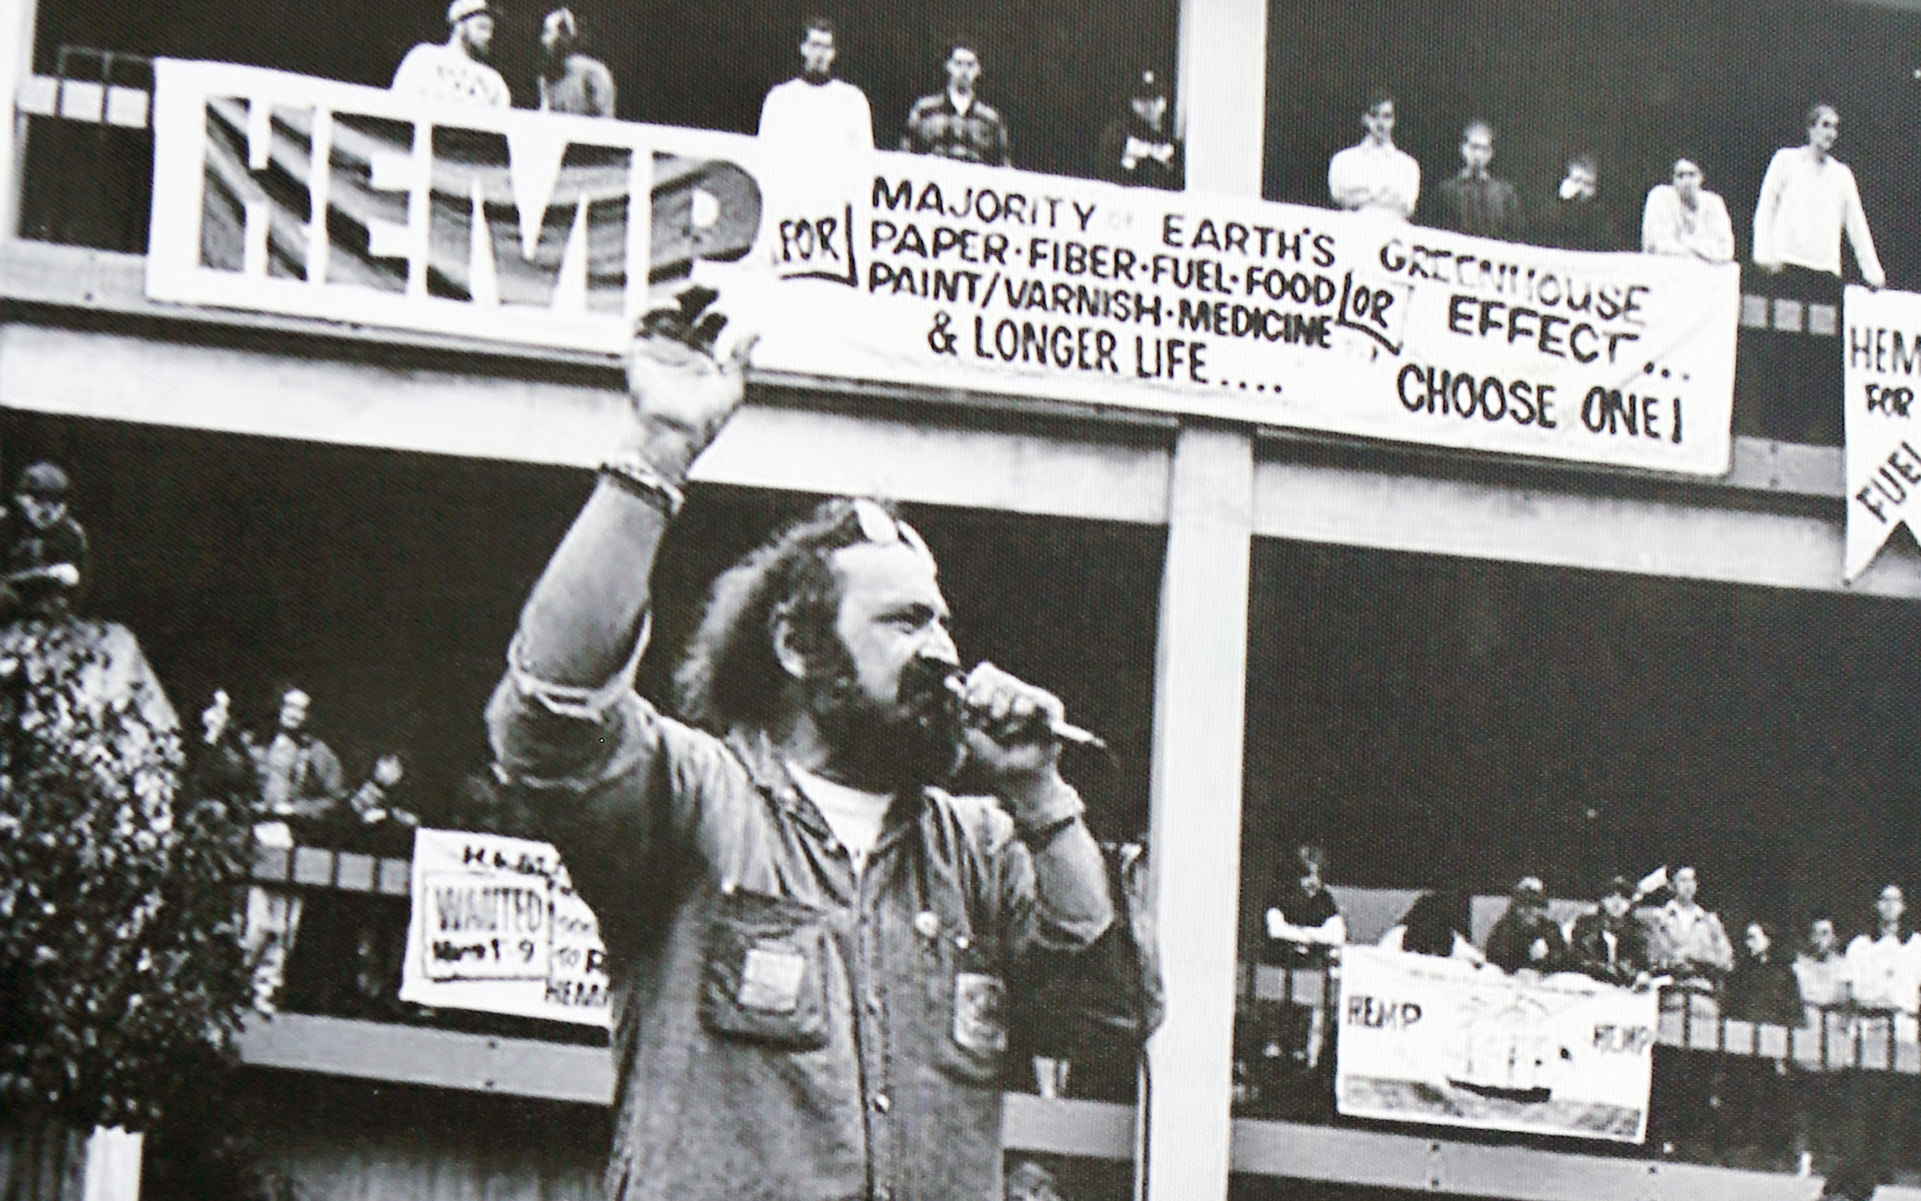 It is our history and we have to remember the legacy of Jack Herer. -